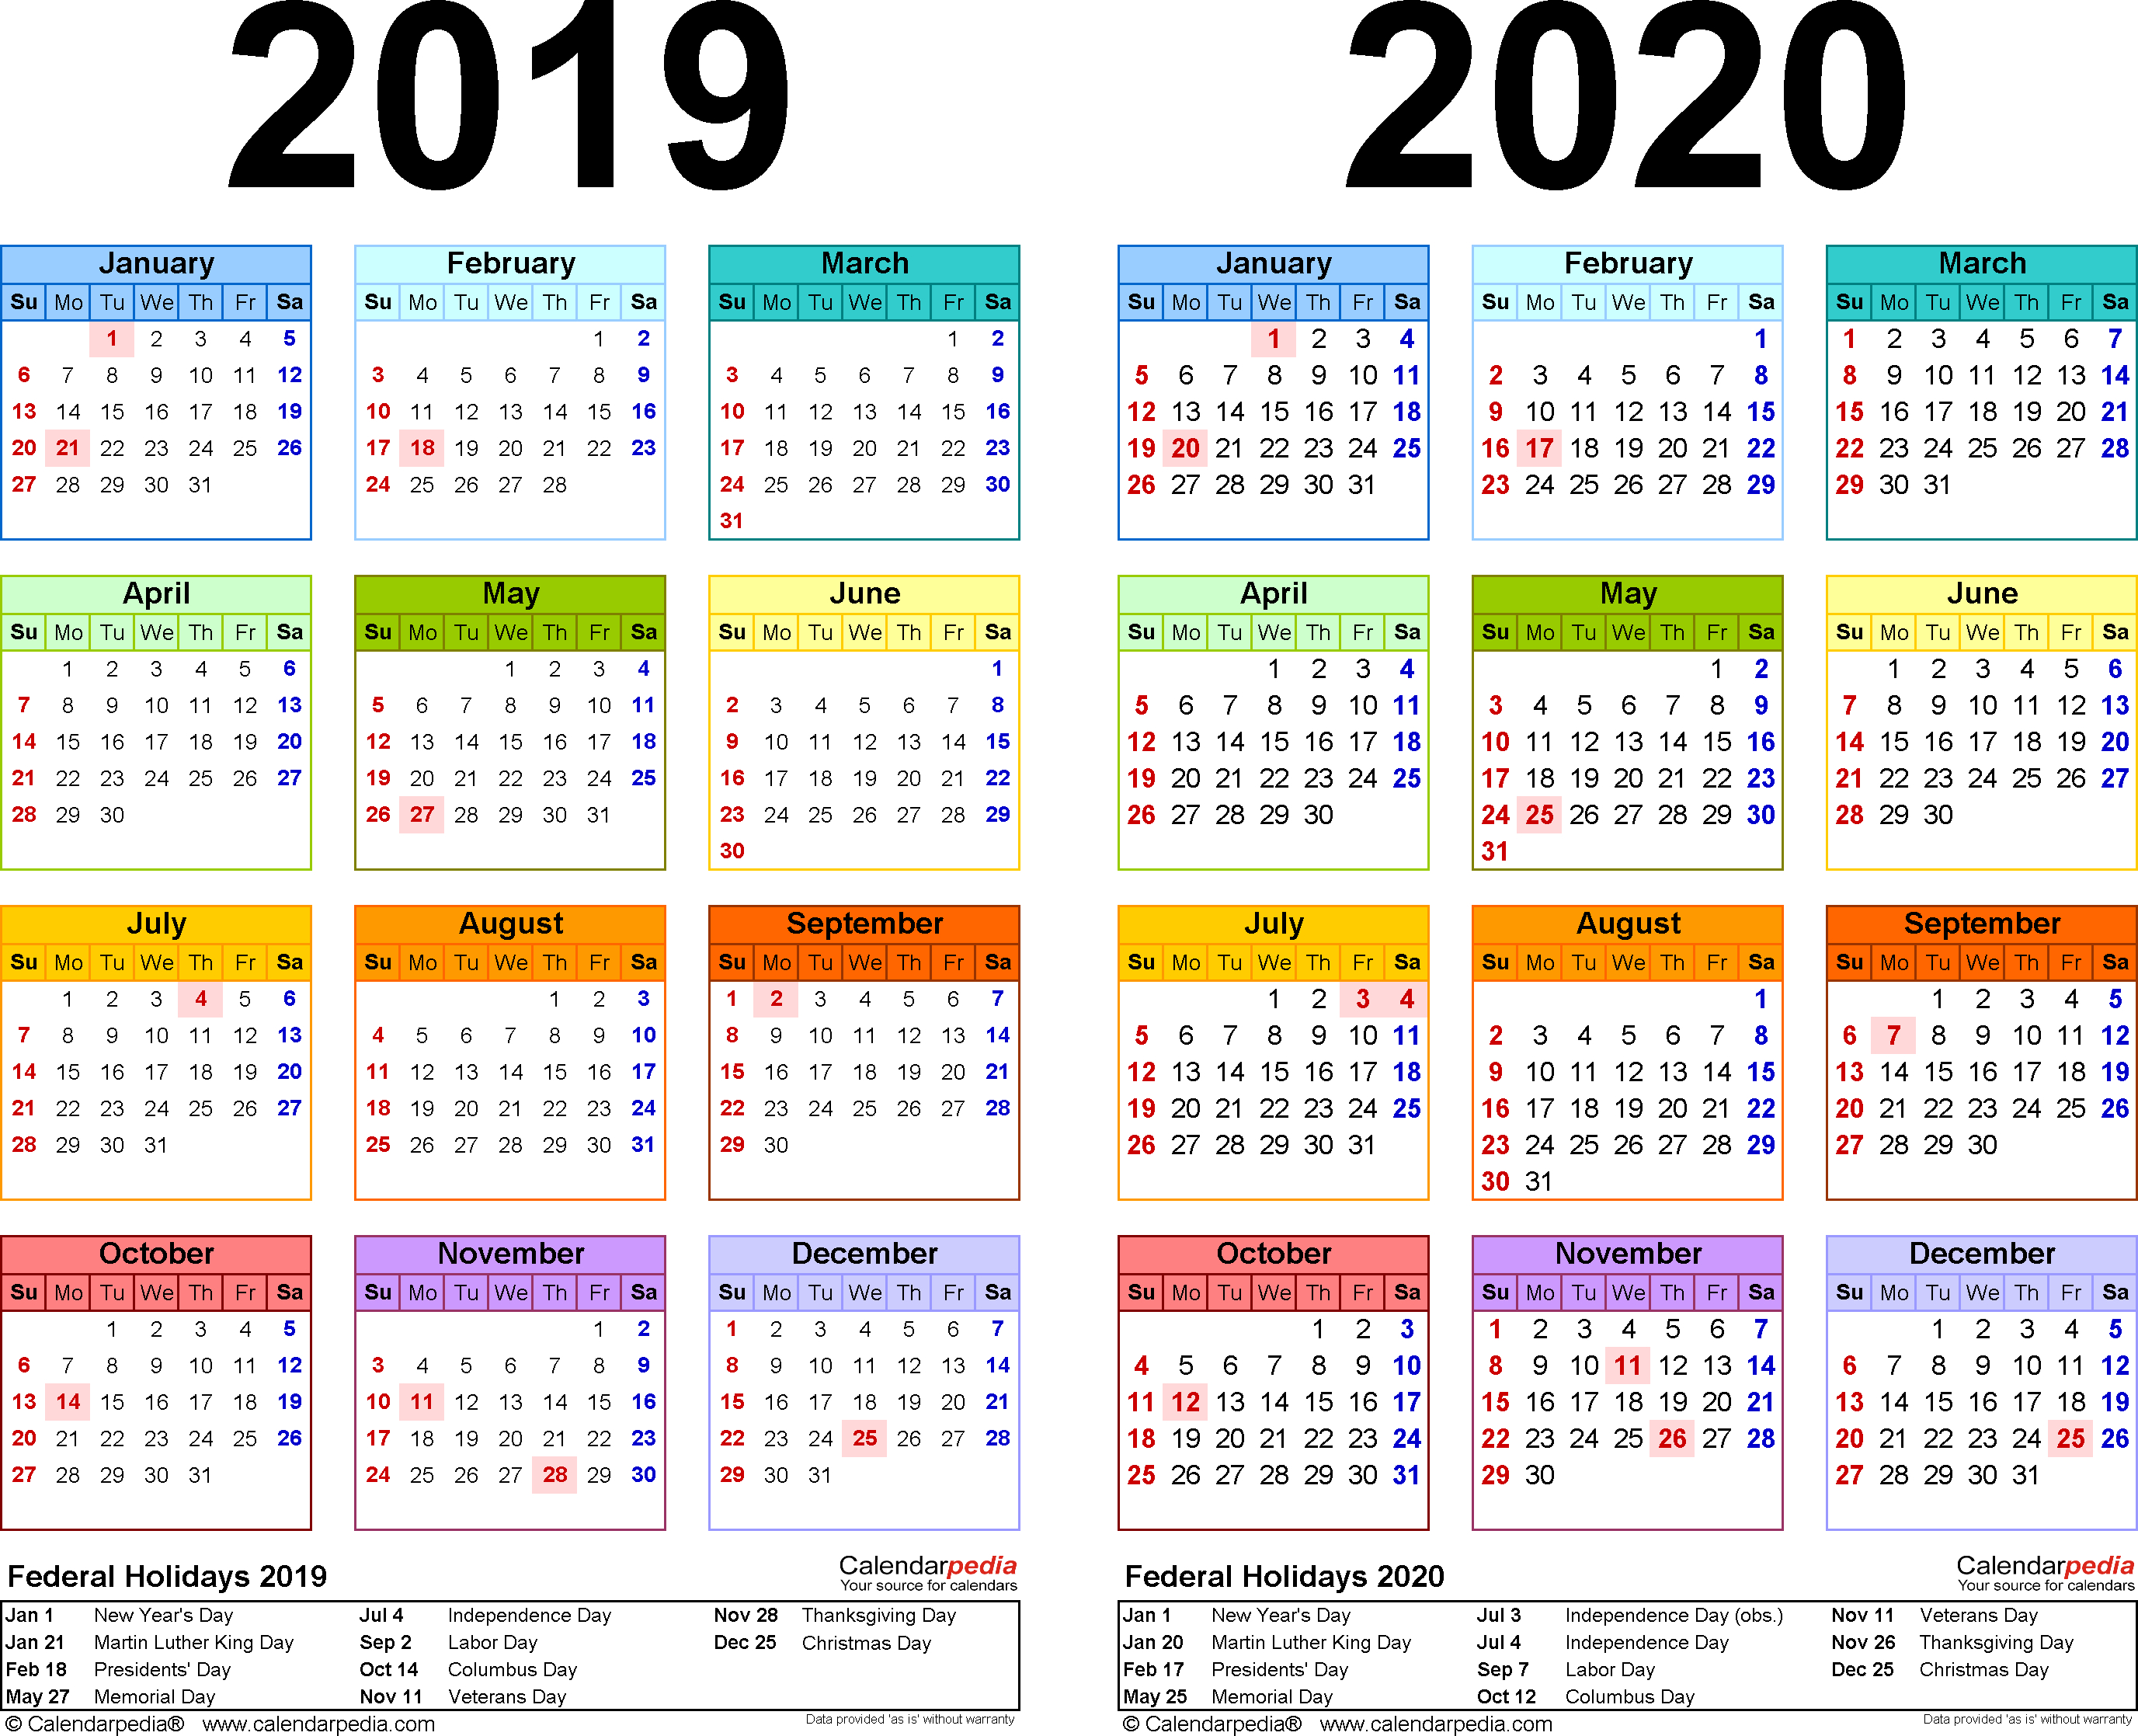 2019-2020 Calendar - Free Printable Two-Year Pdf Calendars throughout Canadian Printable Academic Calendar 2019-2020